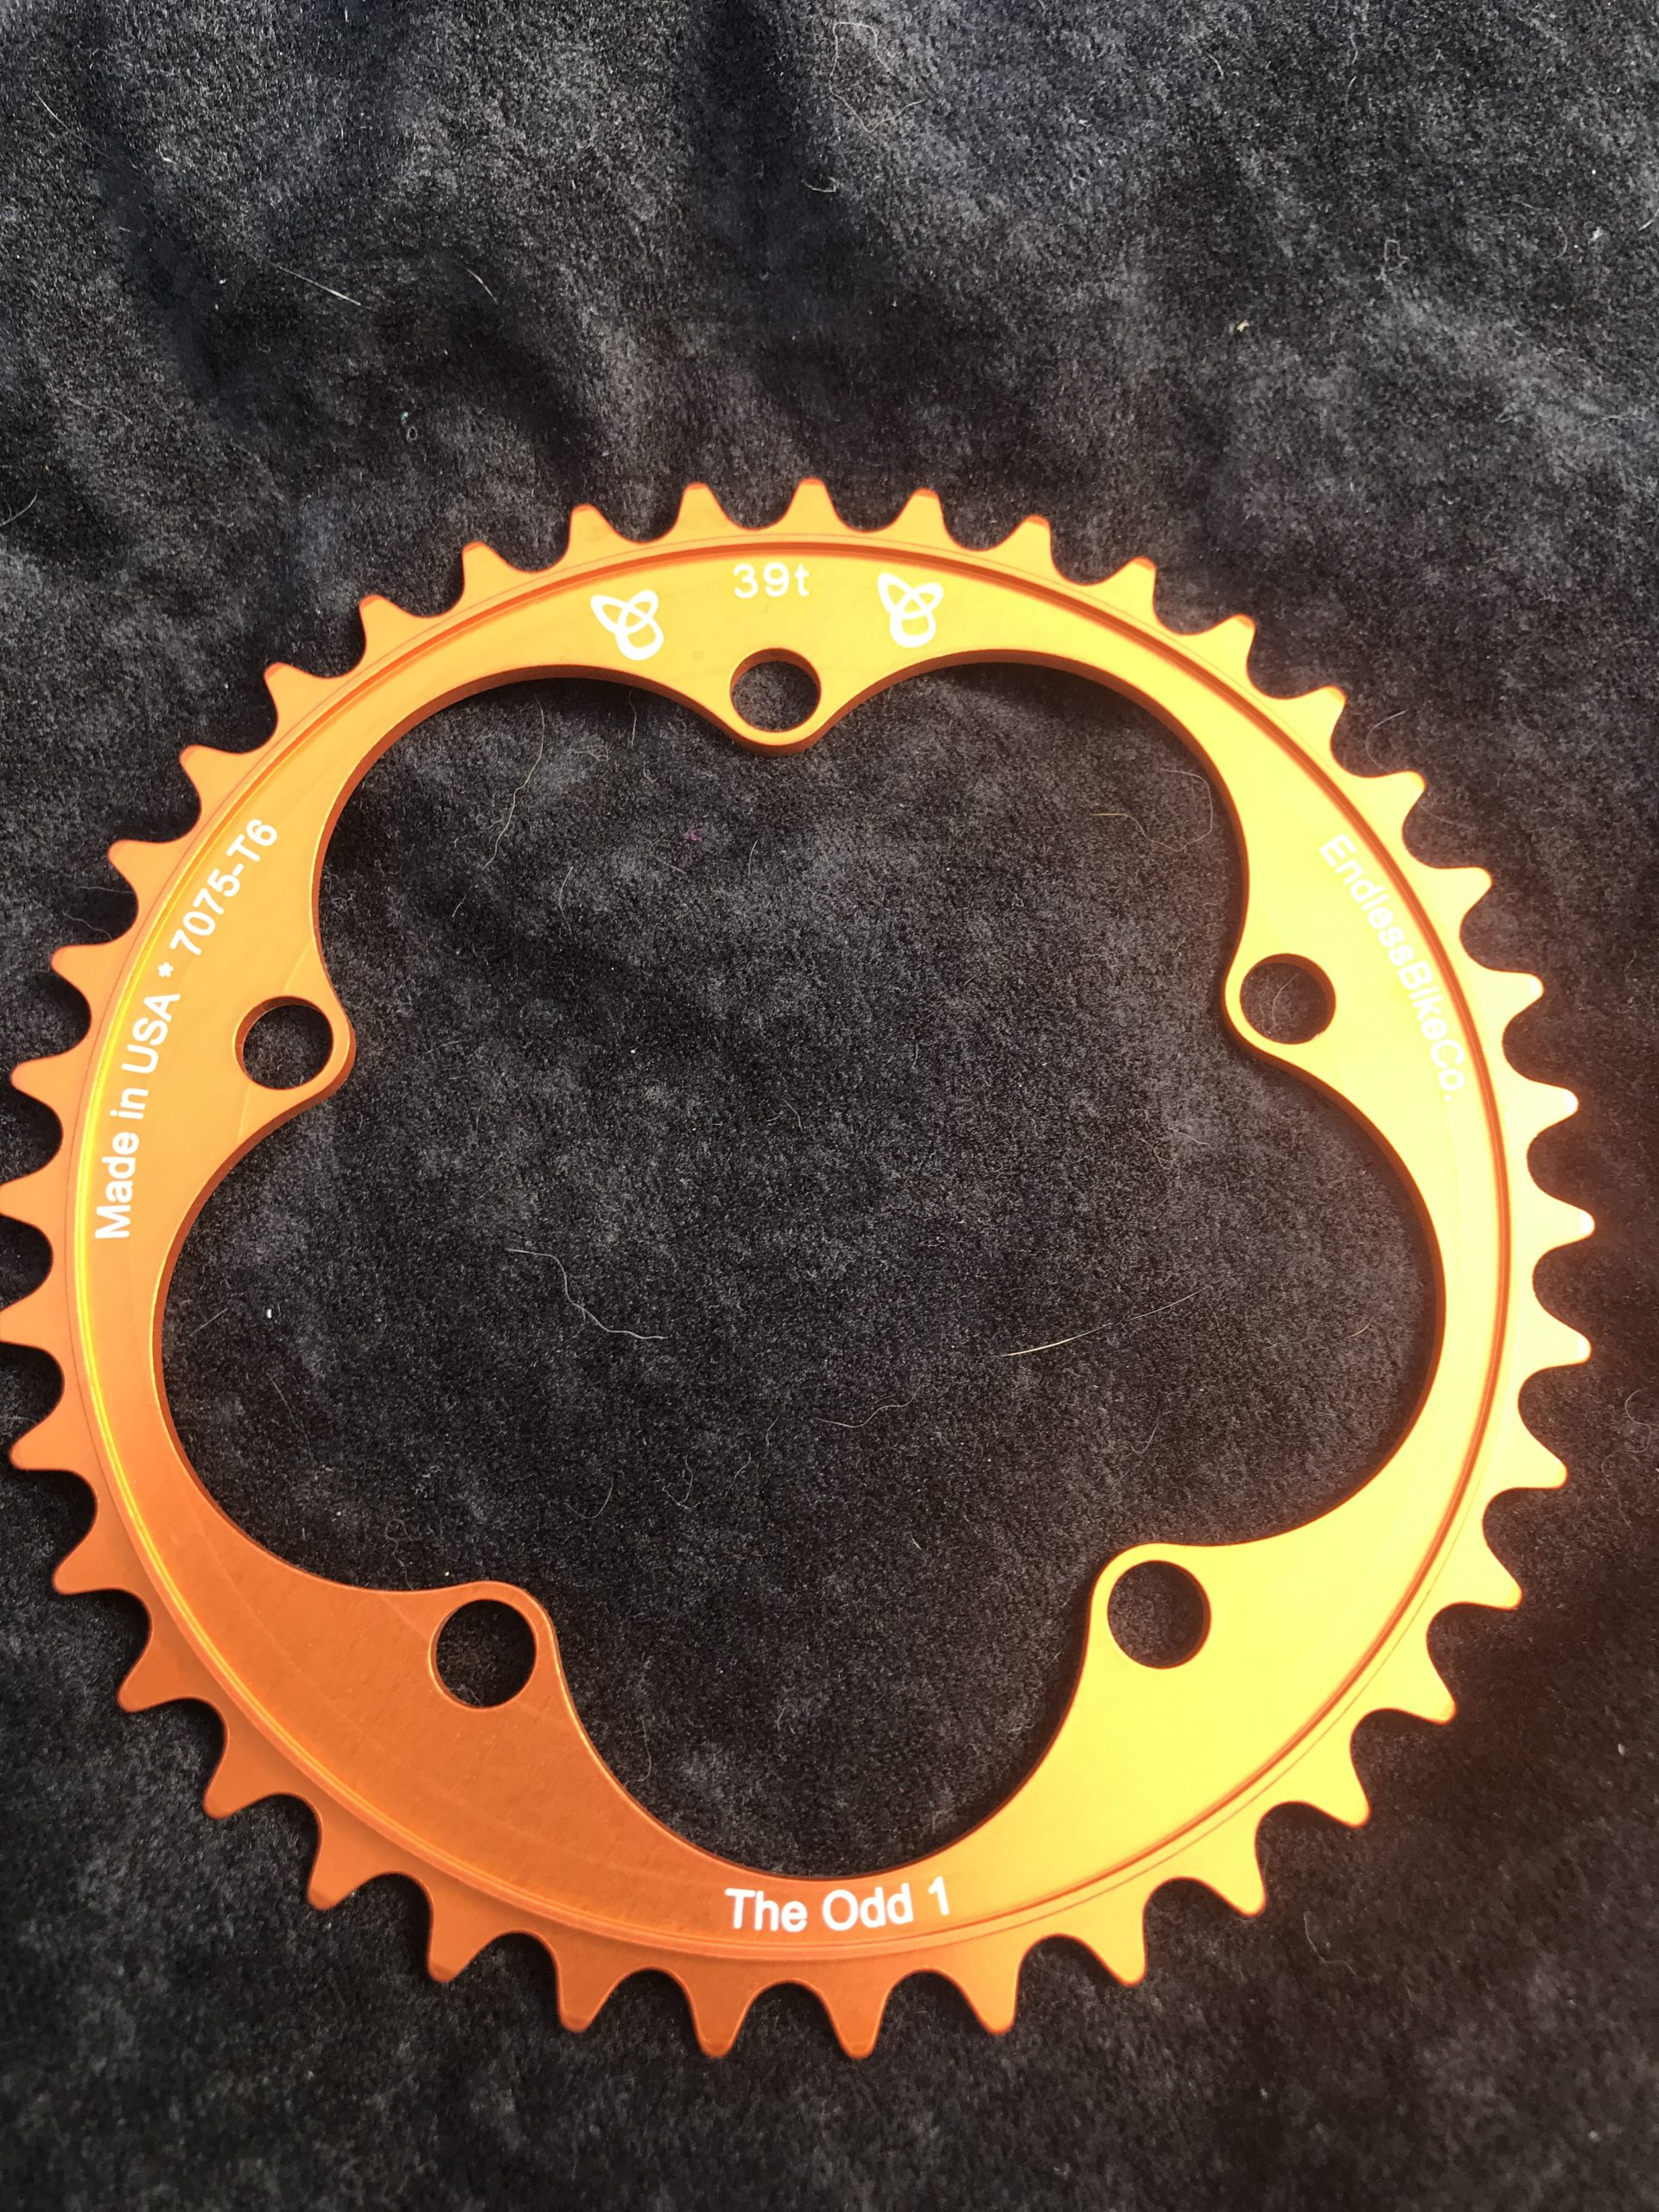 Narrow wide chain ring 39 tooth orange